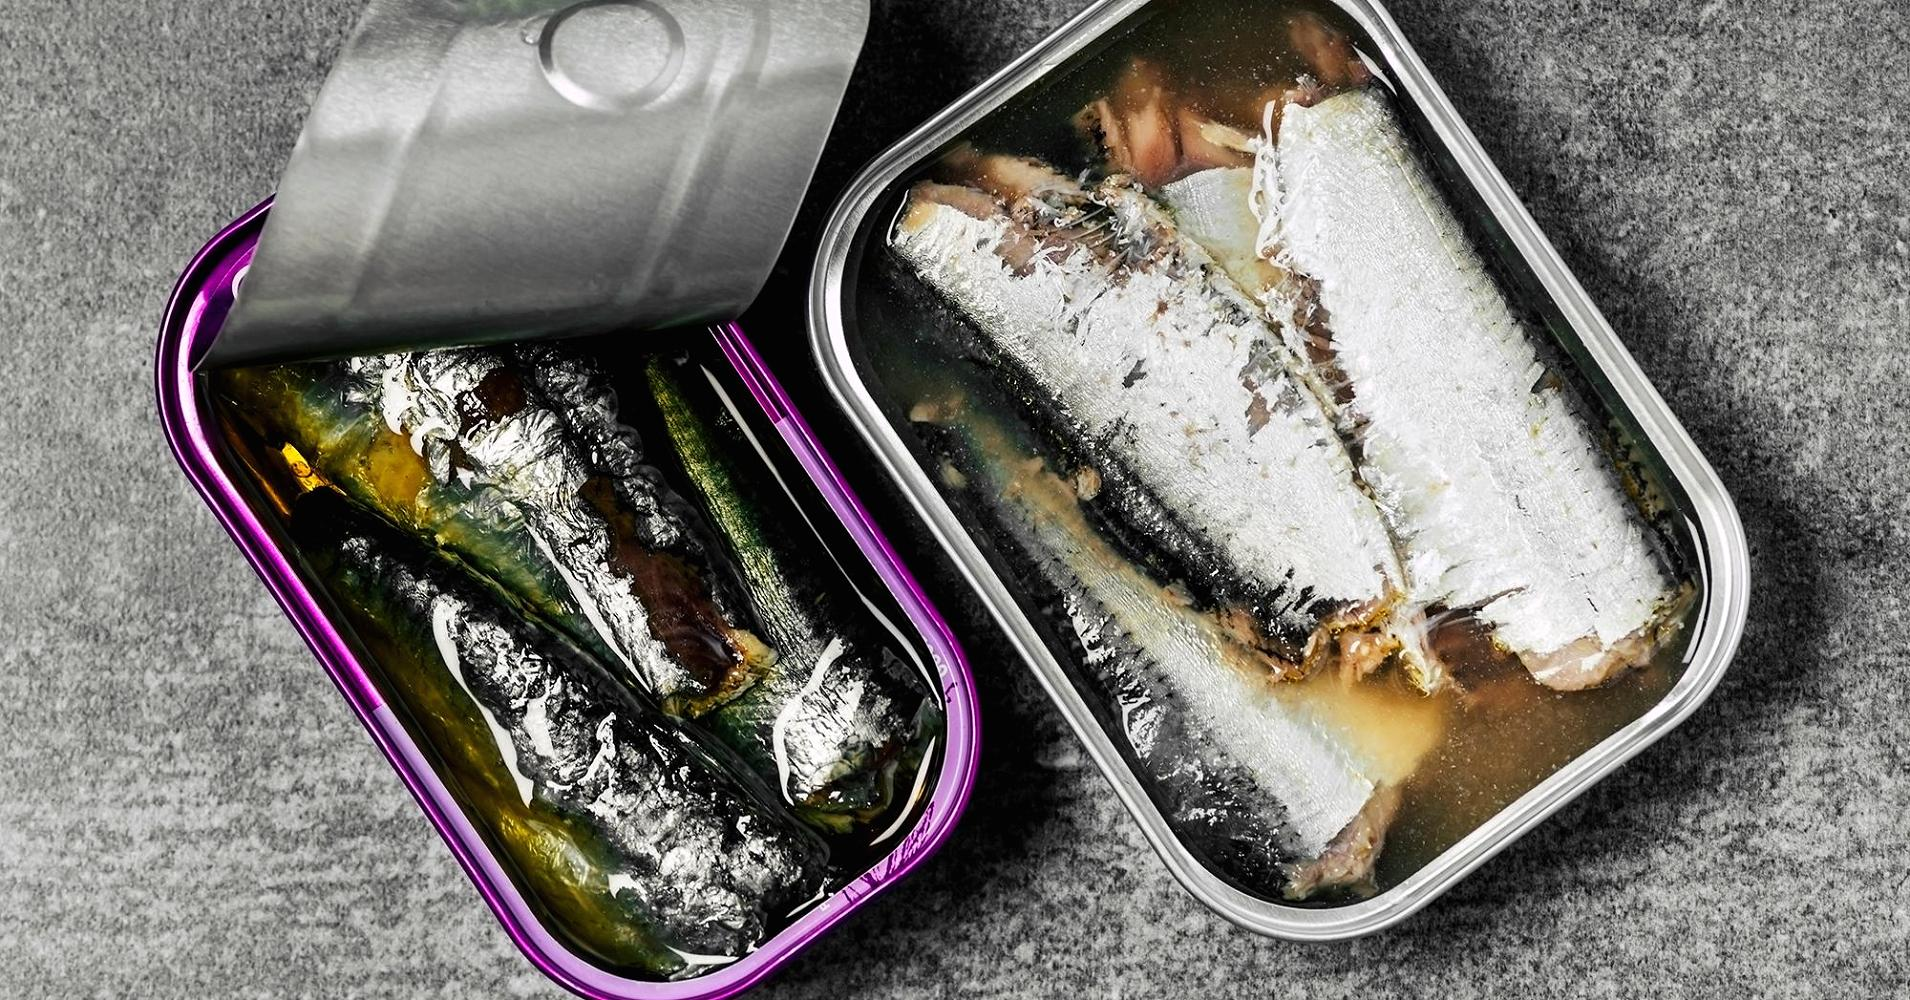 Why this millionaire investor eats five cans of sardines every day